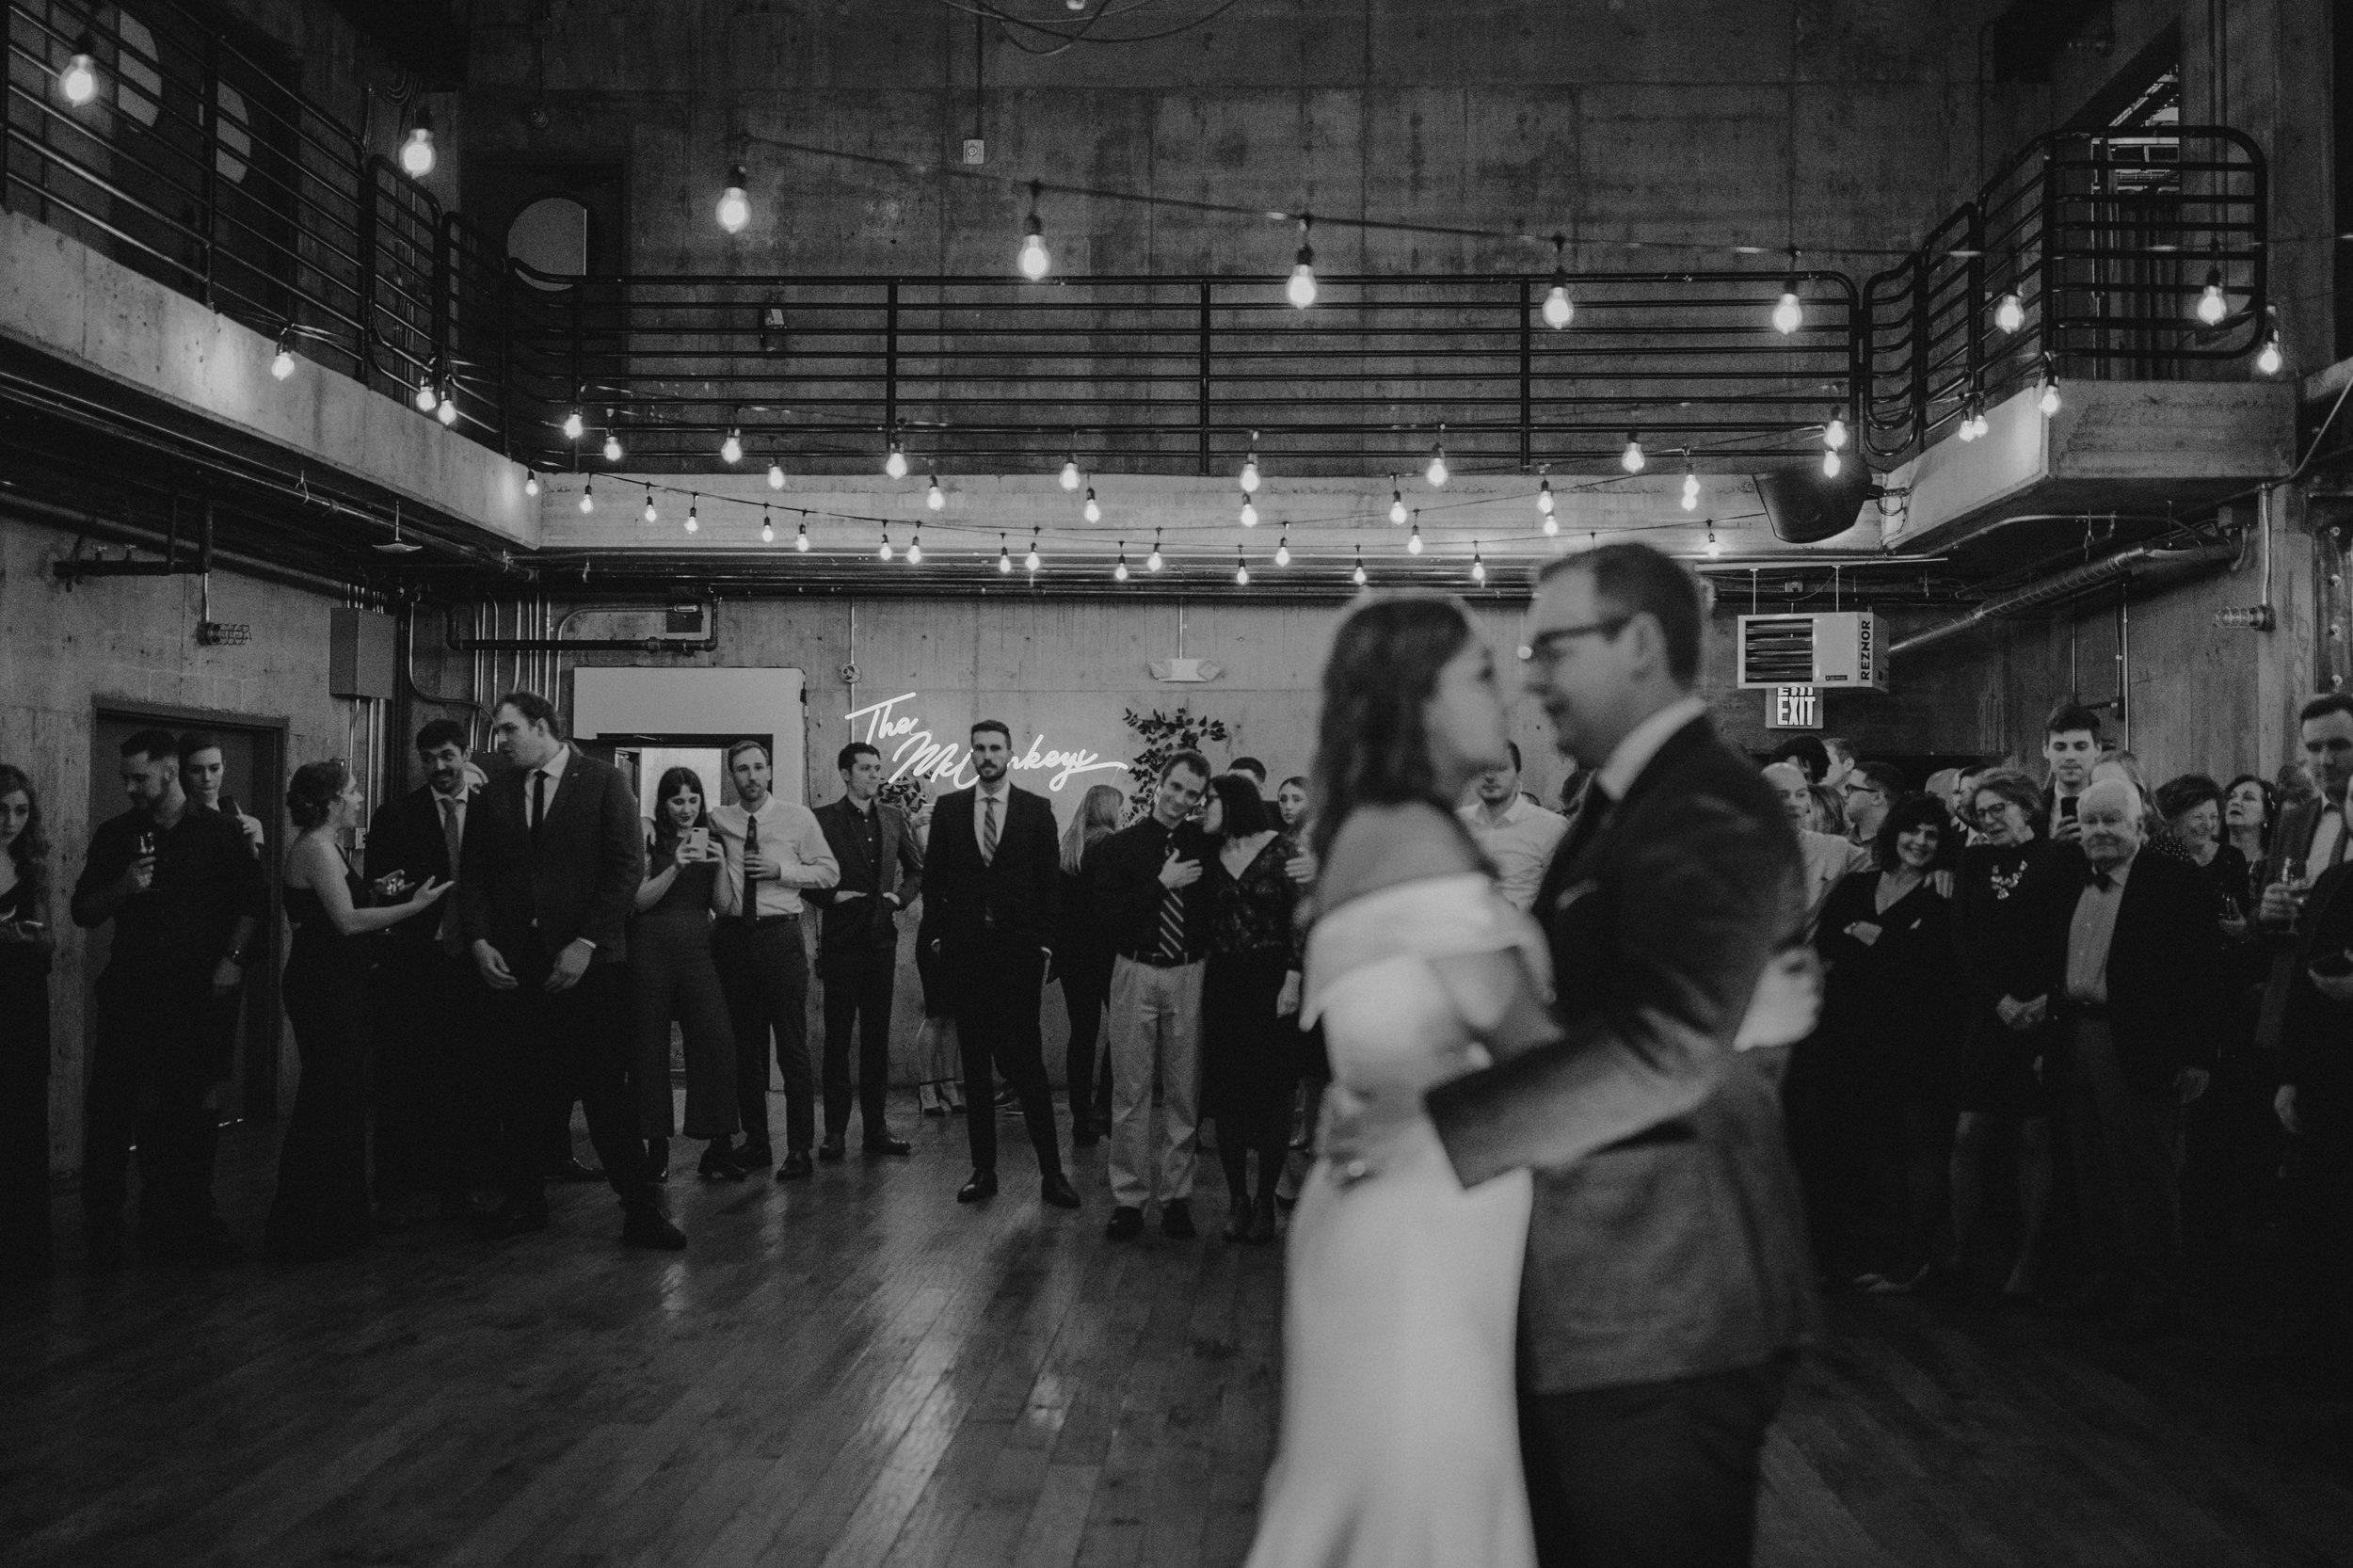 fremont_foundry_seattle_wedding_oliviastrohm___-16.jpg